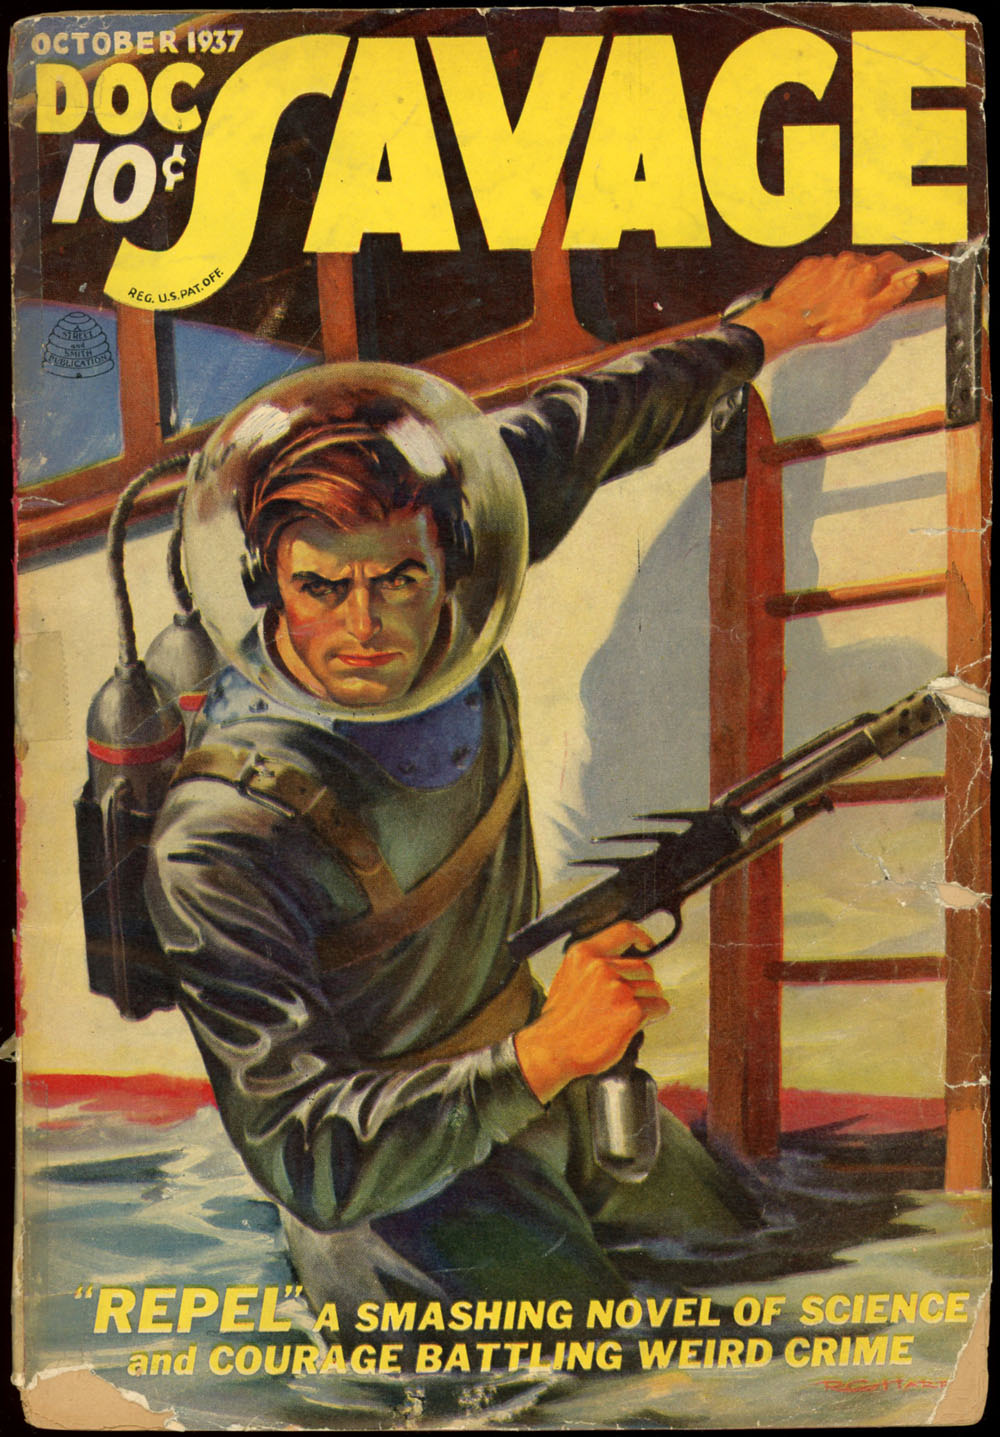 Coverage of an original Doc Savage magazine from October 1937.